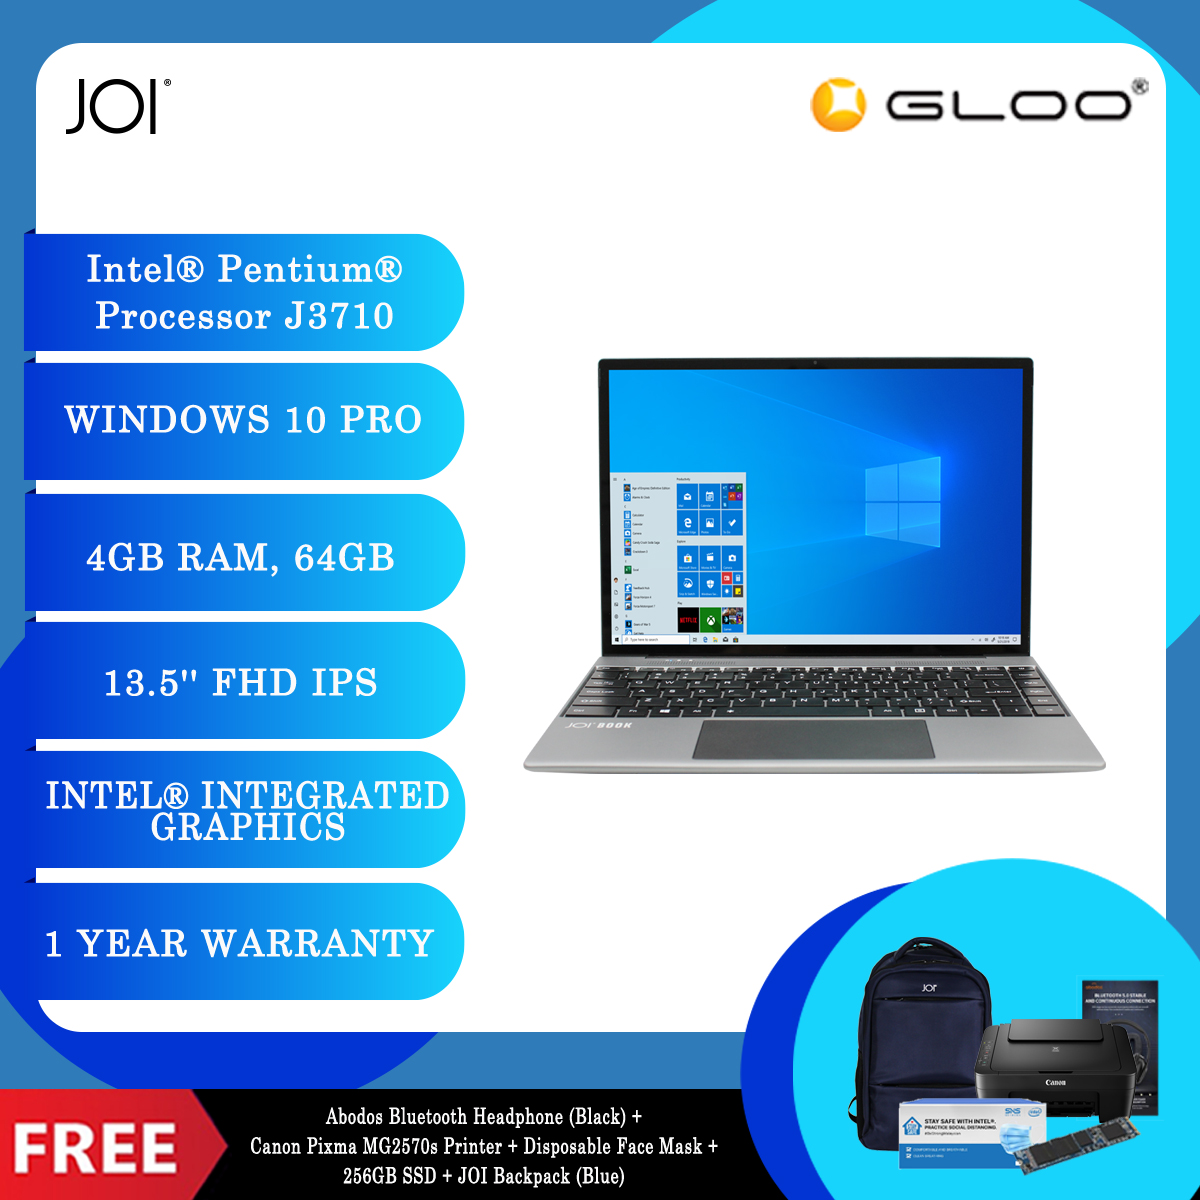 JOI Book 200 Pro + Abodos Bluetooth Headphone Black + Canon Pixma MG2570s Printer + Disposable 3 Layer Face Mask + 256GB SSD + JOI Backpack (Blue) [BPPJOI0200PRBL]